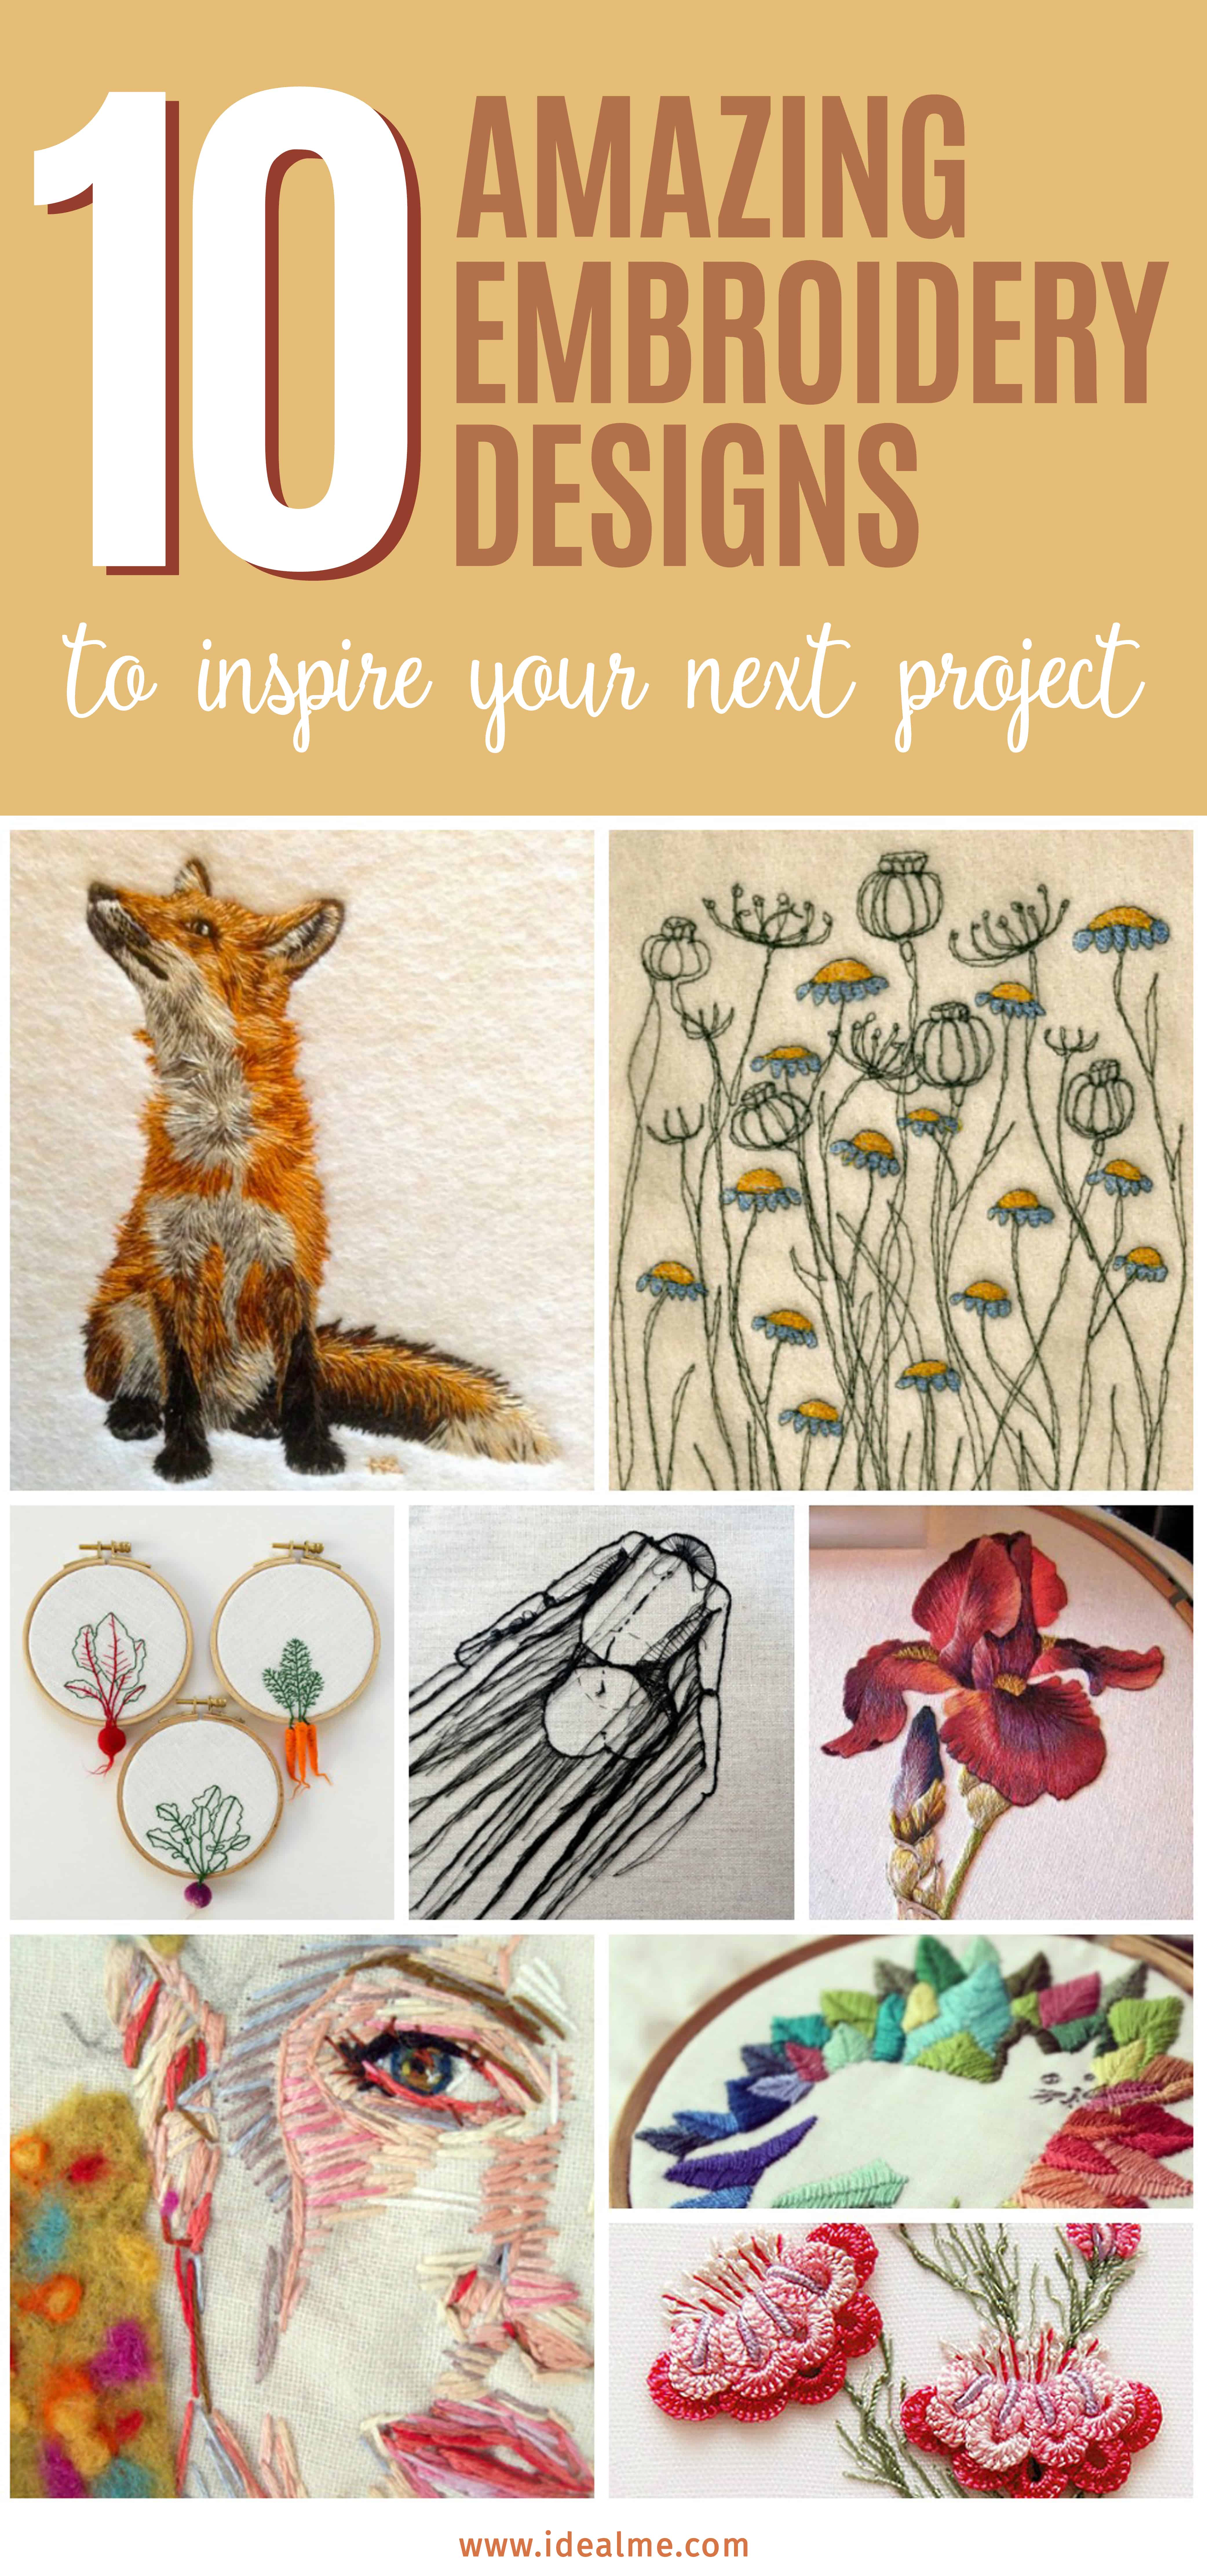 10 Amazing Embroidery Designs Ideal Me